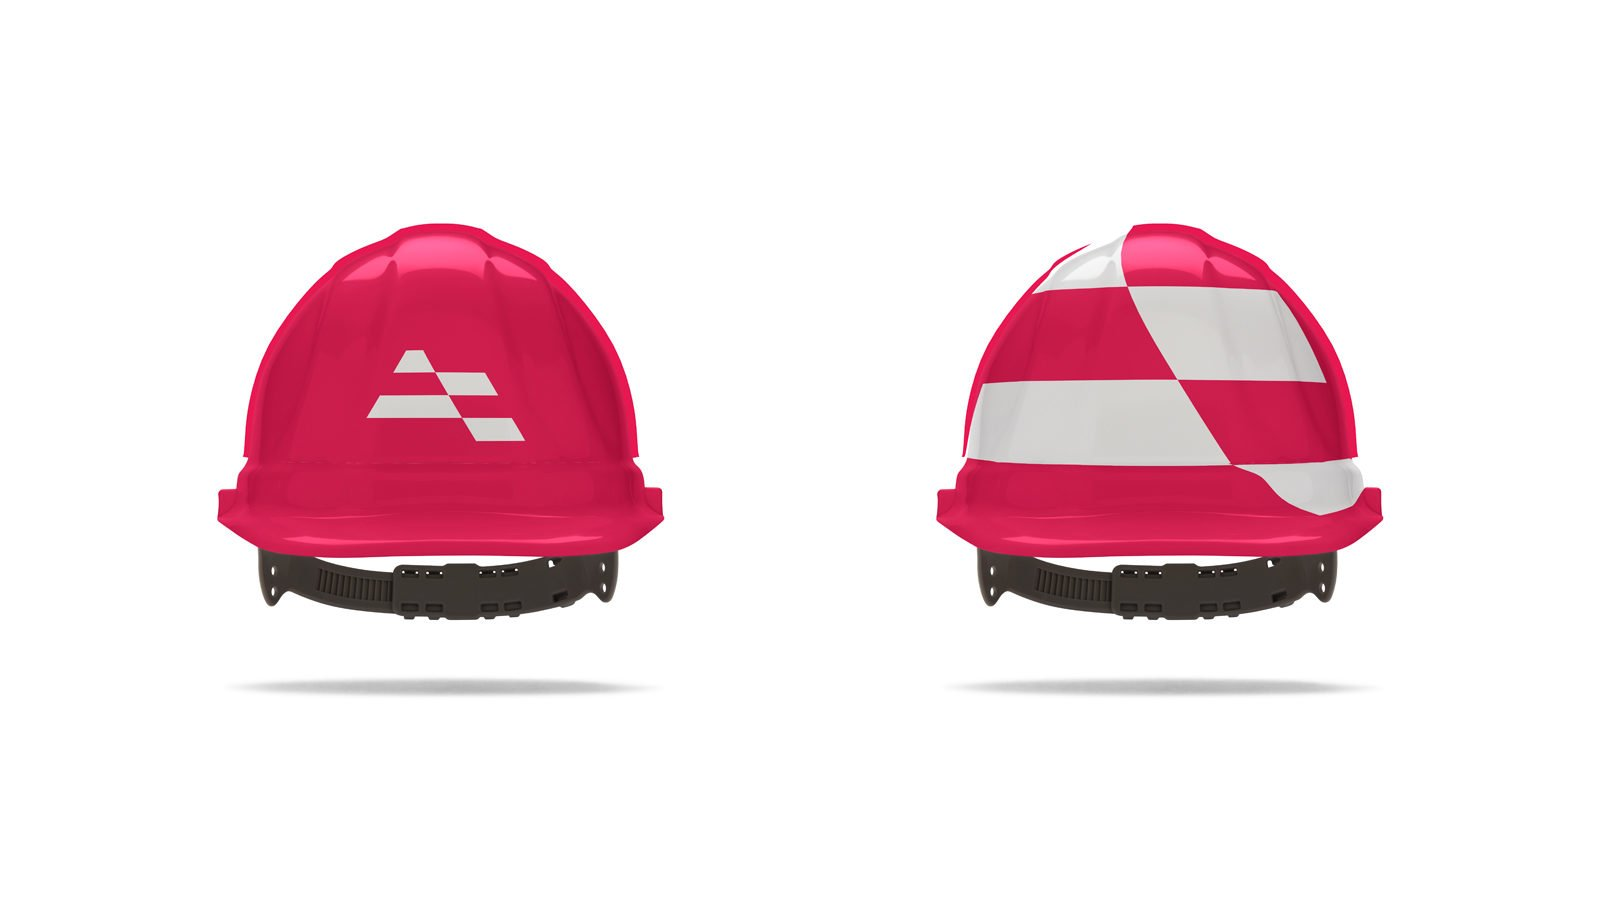 Ashley Energy Civic Brand Identity Helmets by Bullhorn Creative